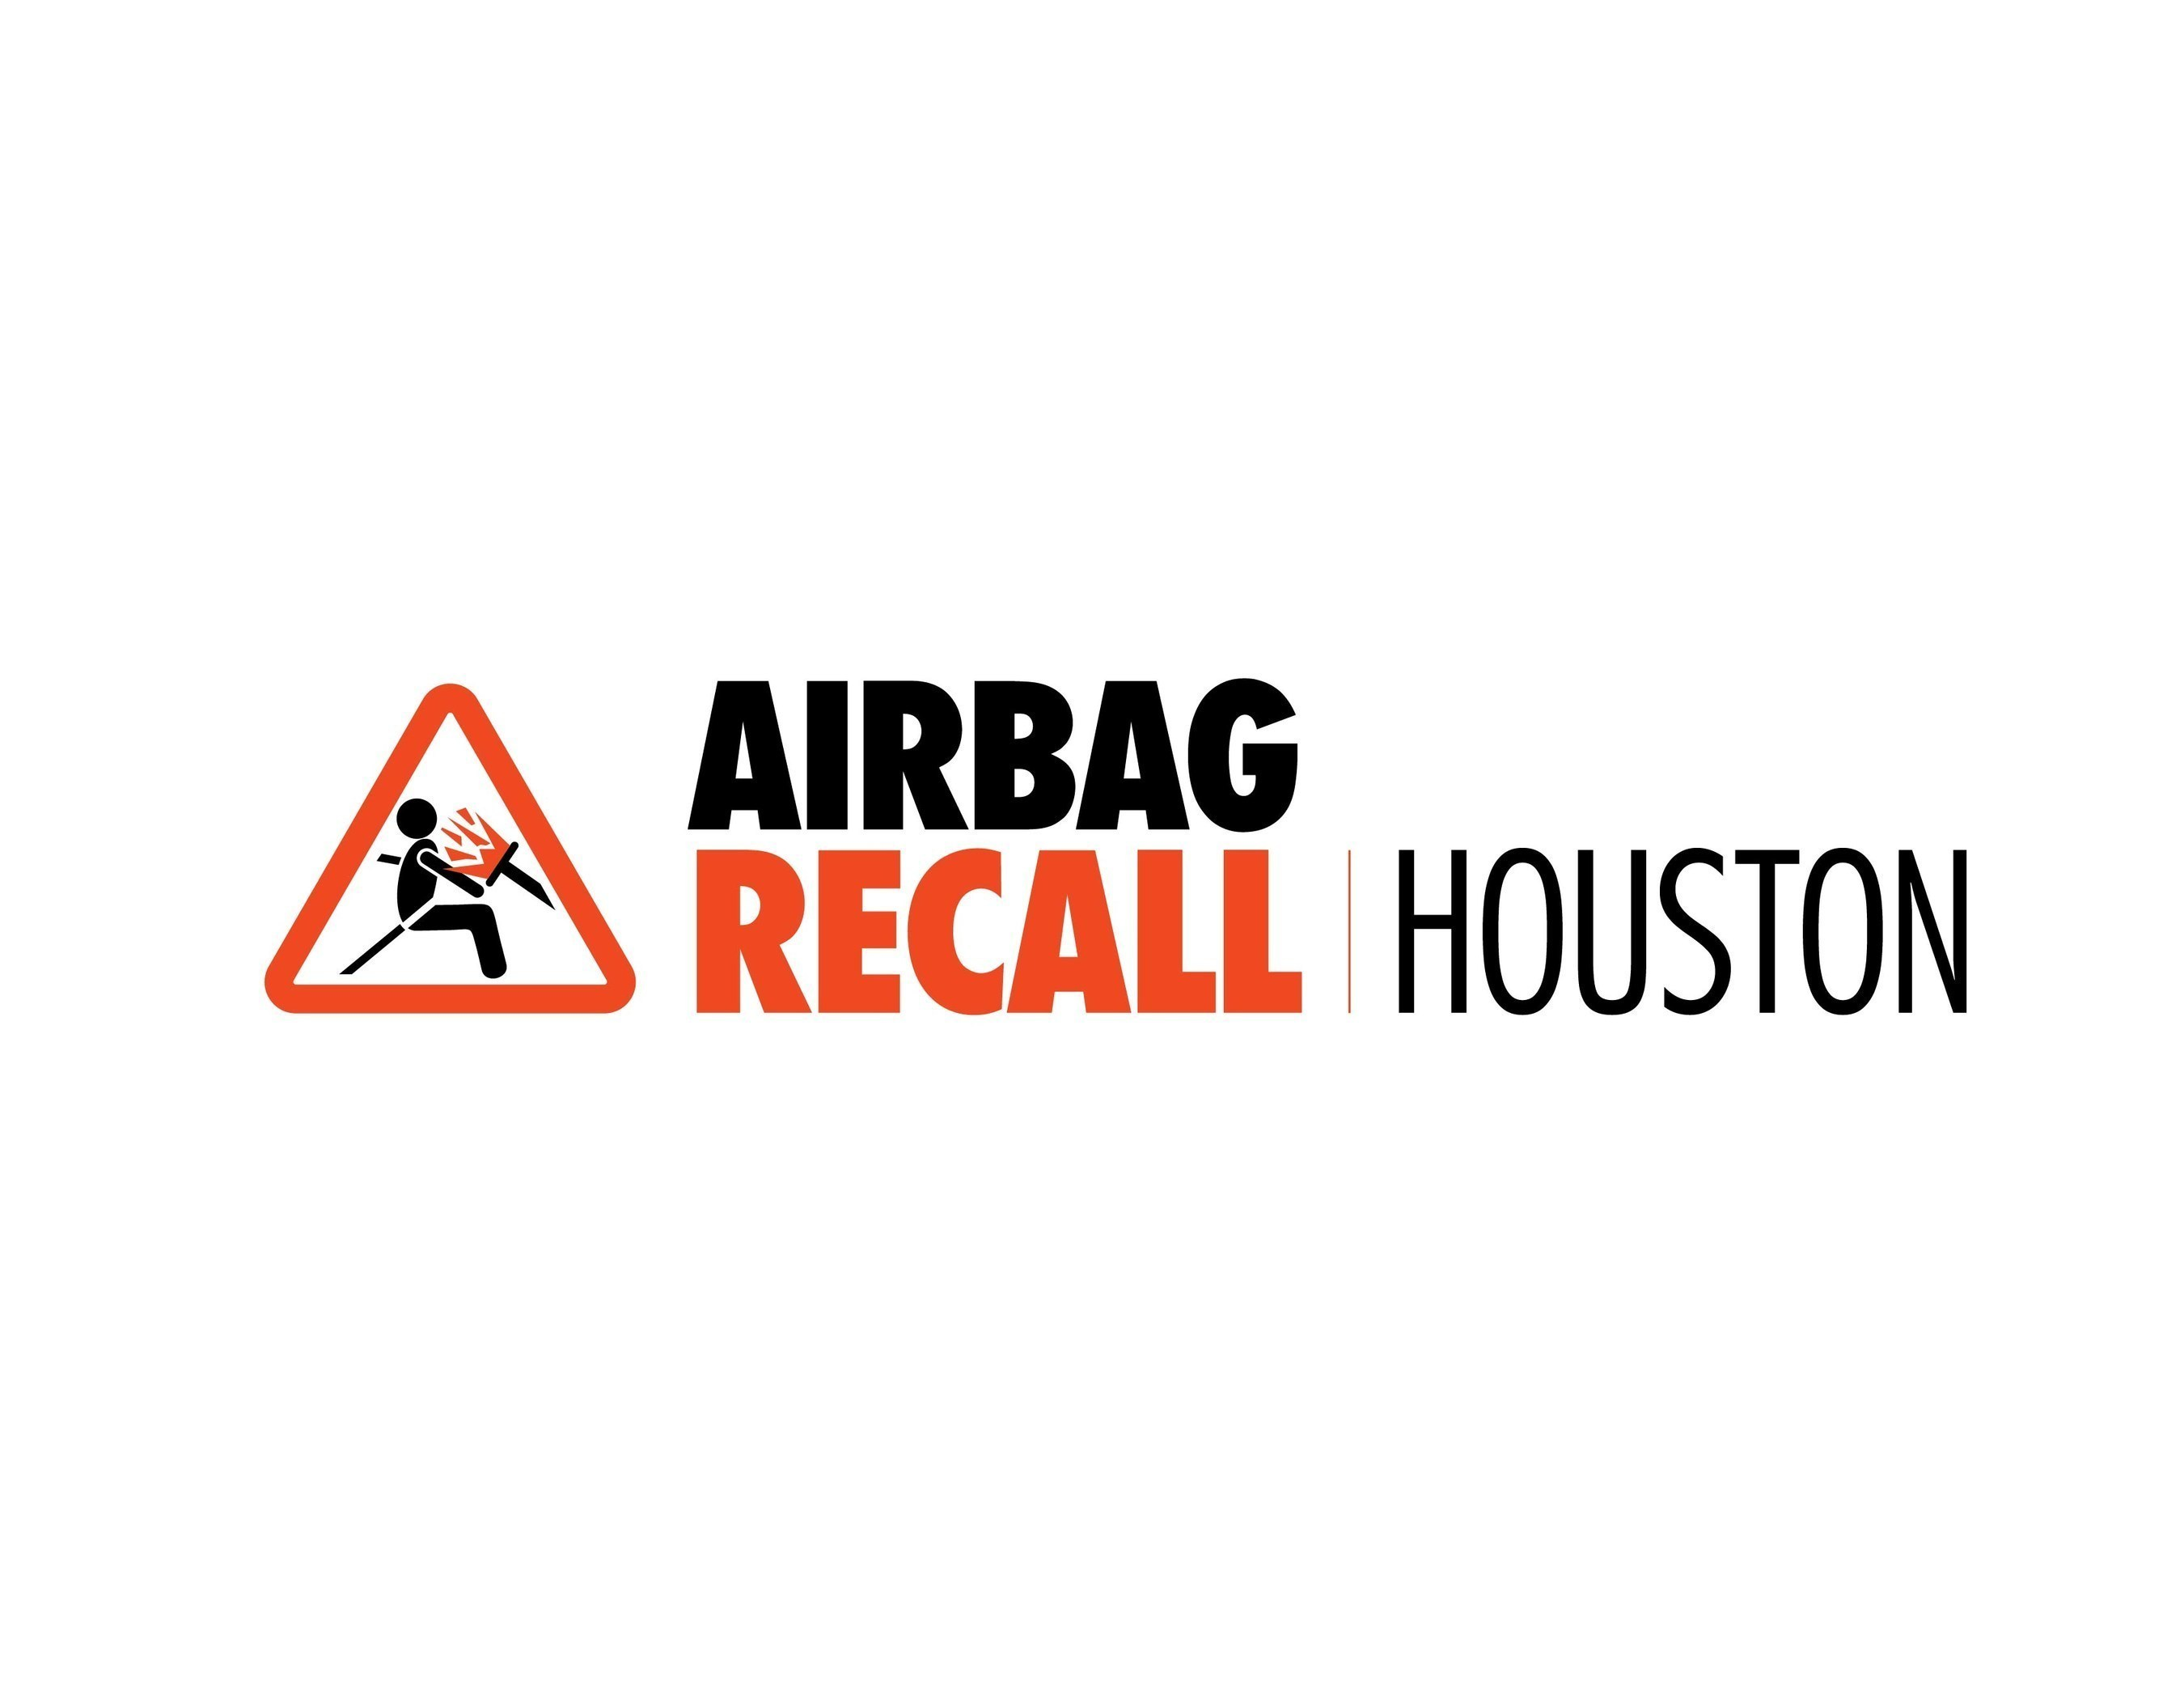 Airbag Recall: Houston is the unified effort of community organizations, public interest groups, private companies, elected officials, faith communities and other concerned parties to raise consumer awareness about the ongoing airbag inflator recall.